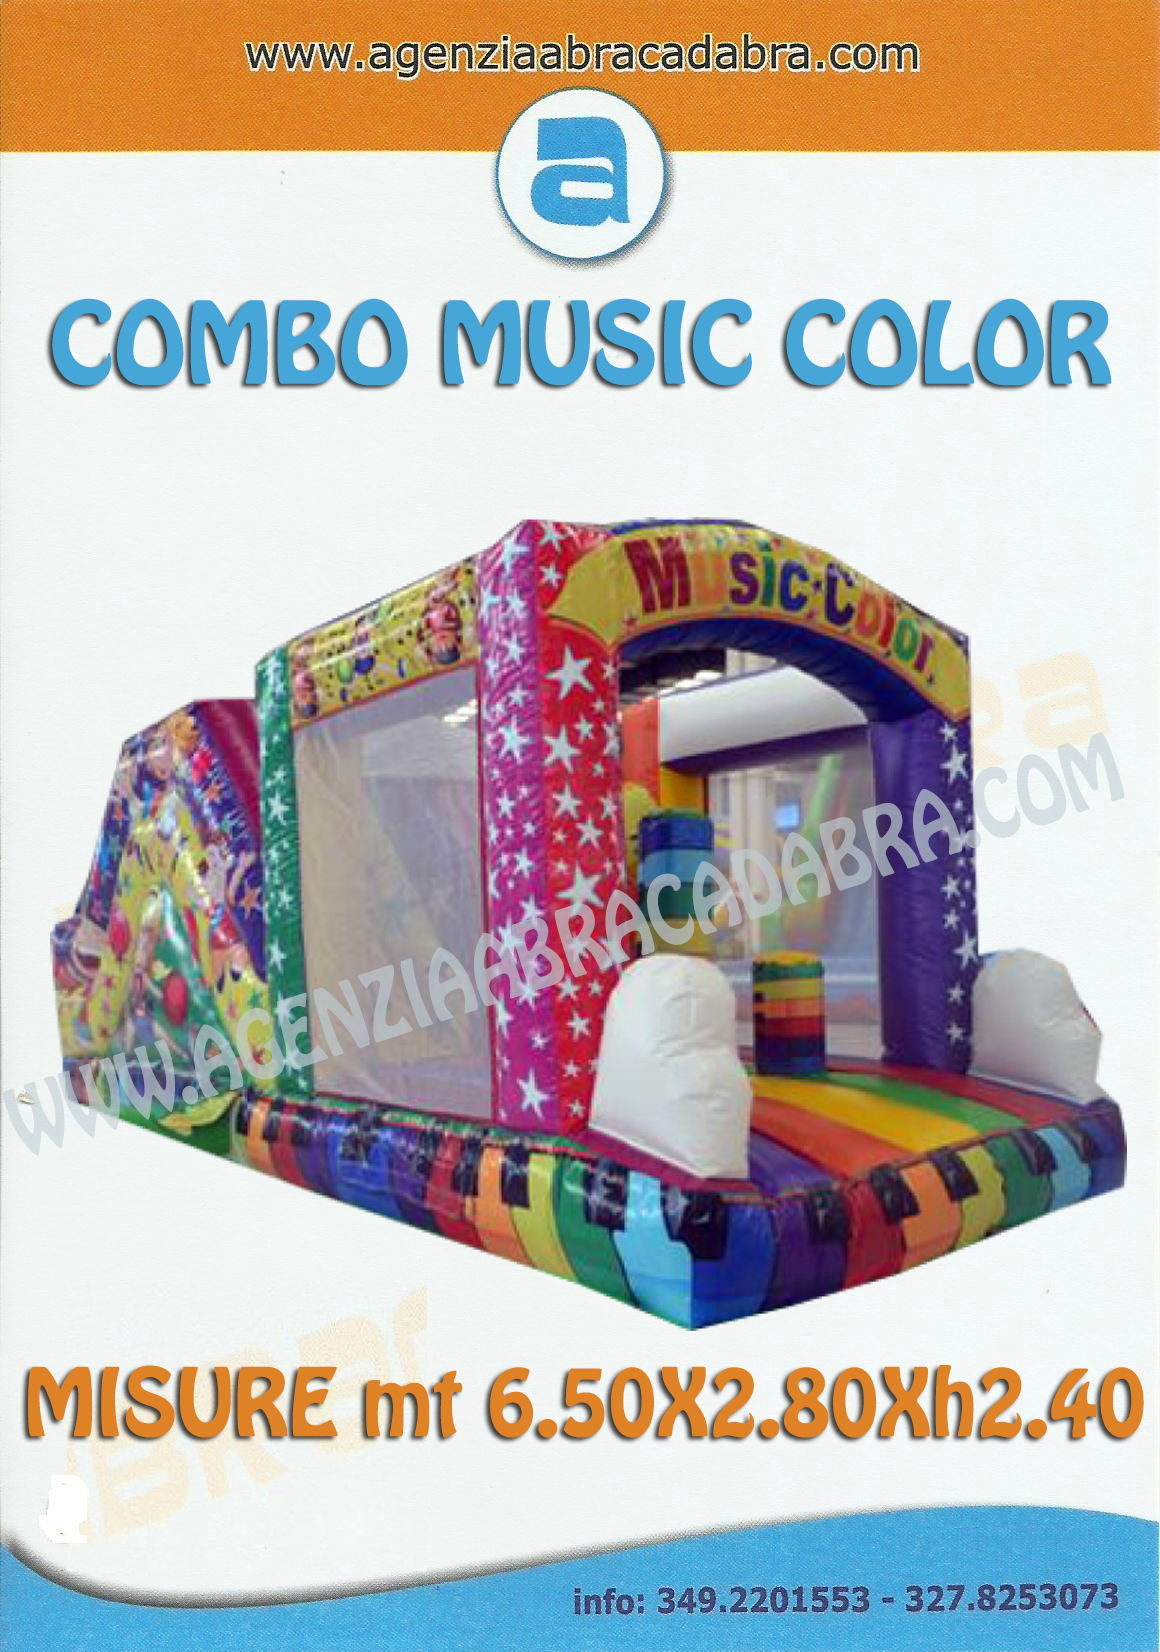 combomusiccolor